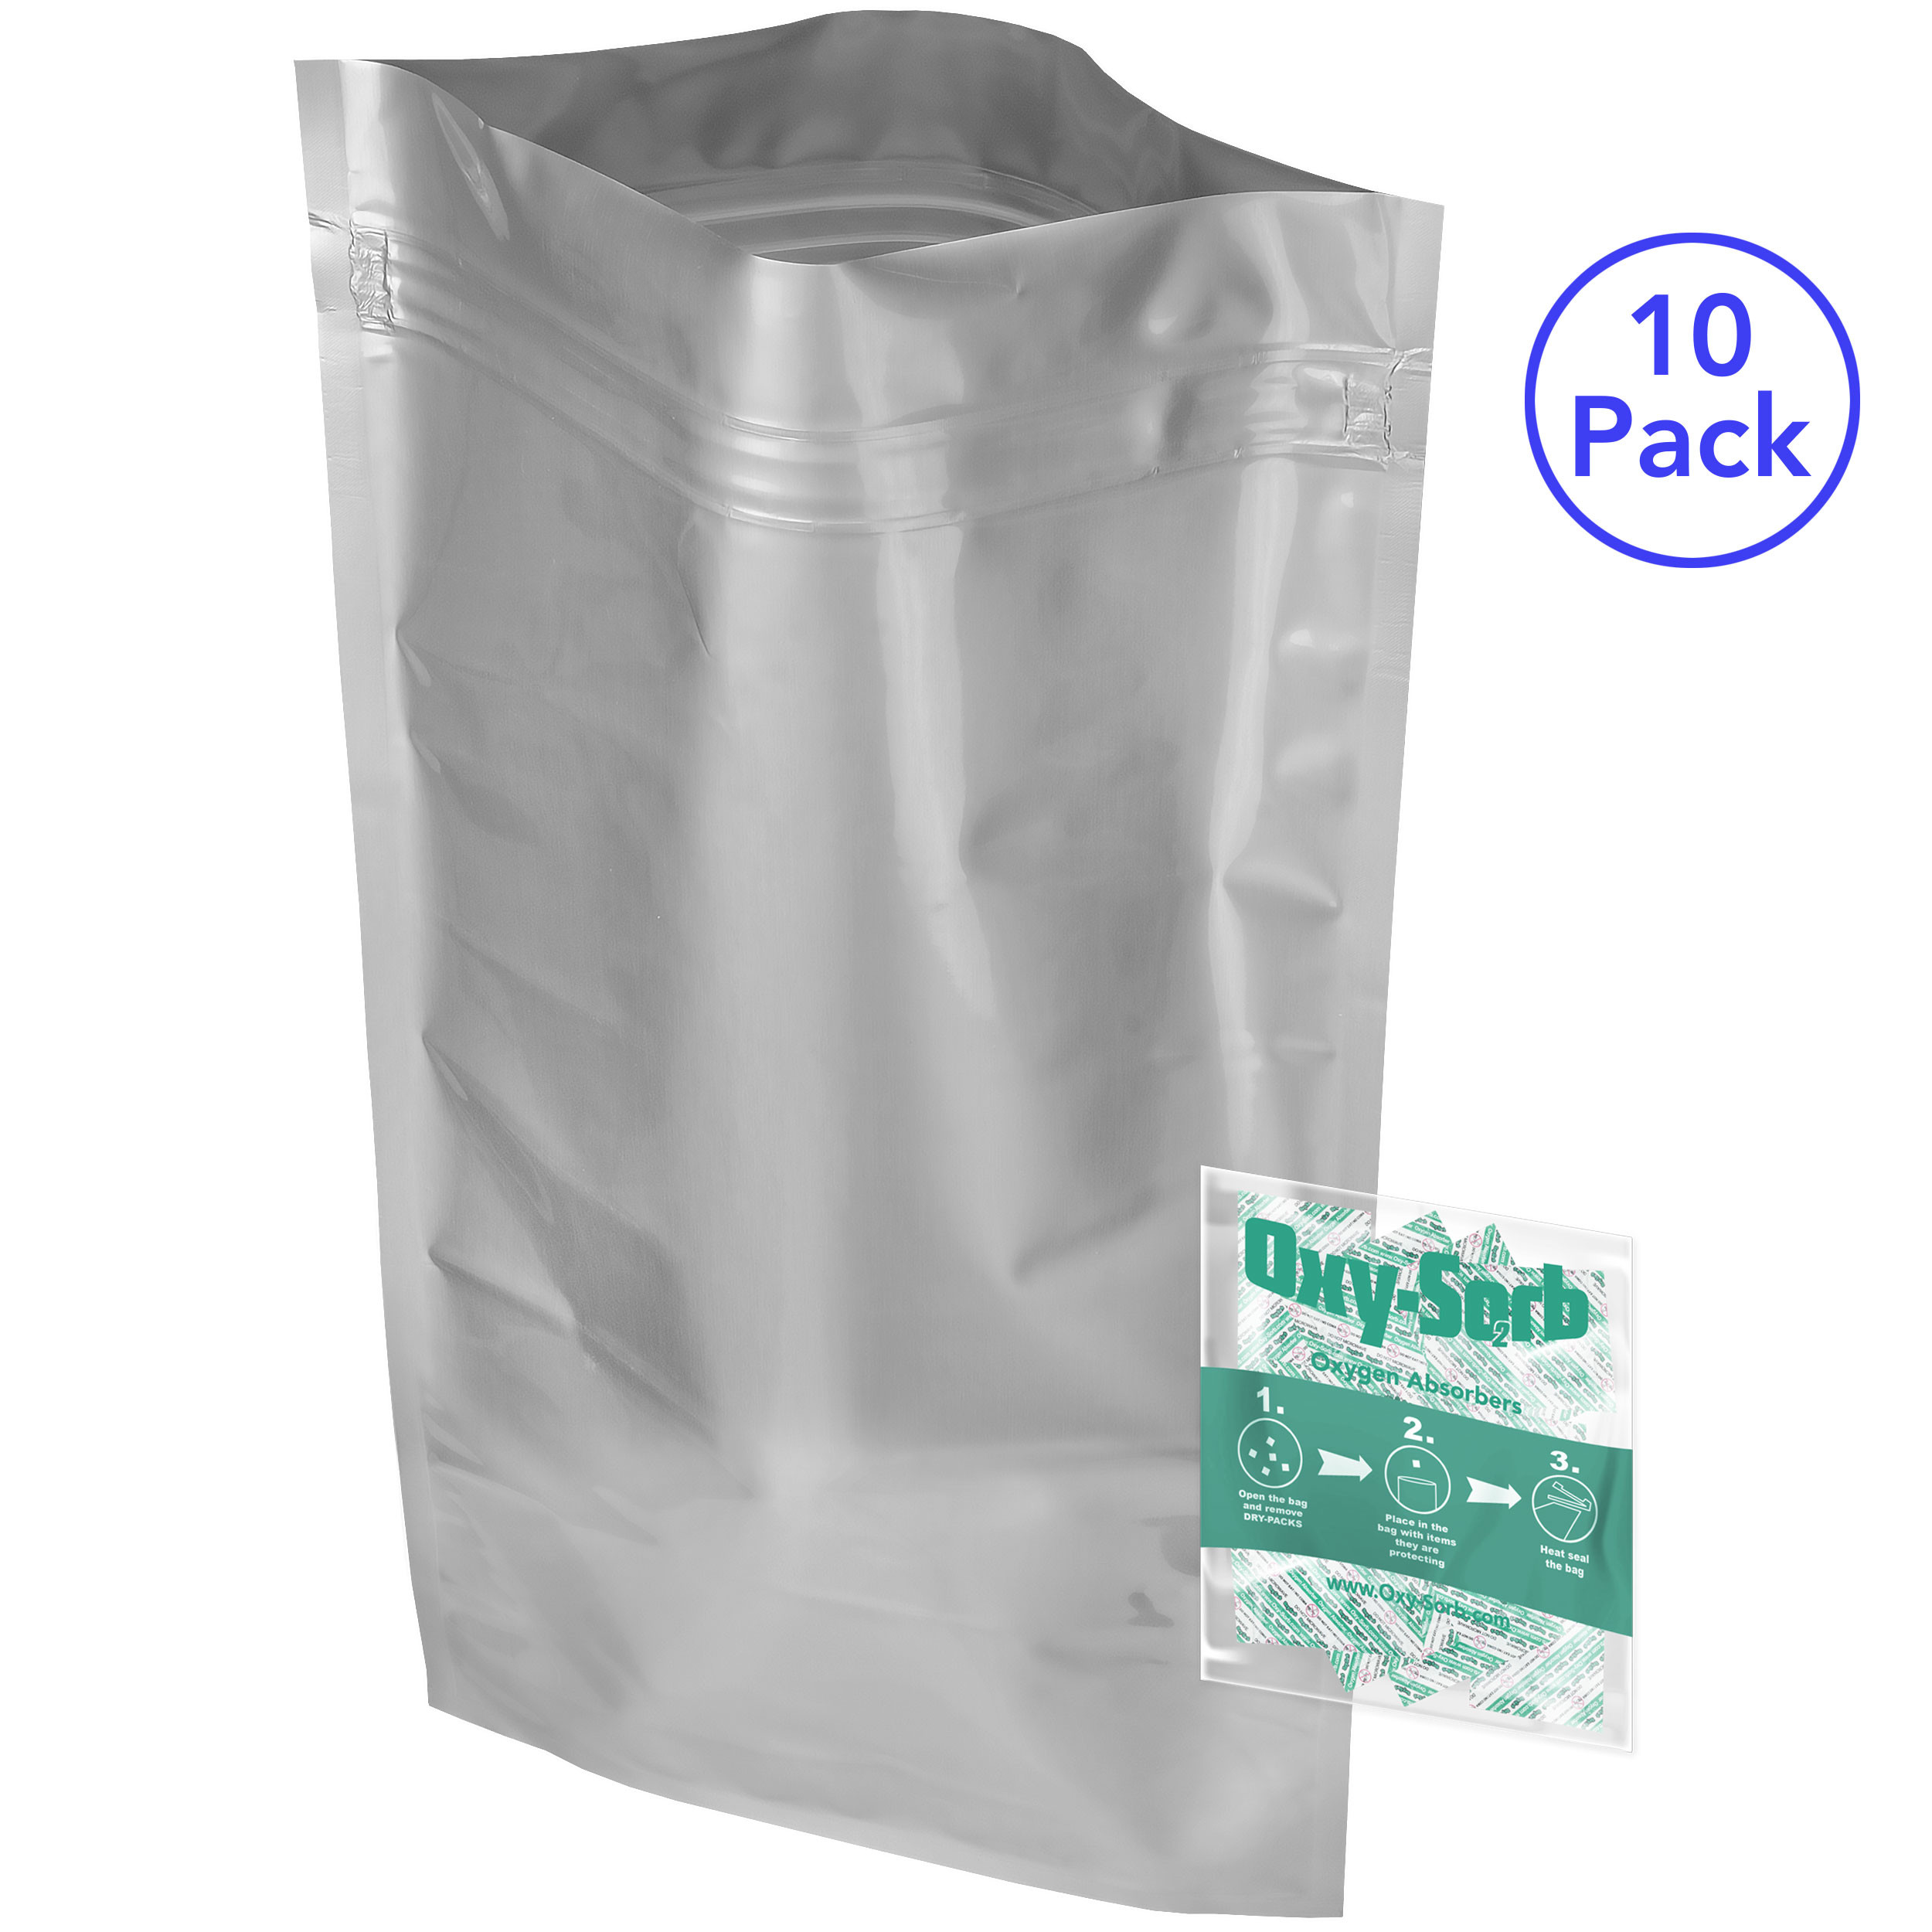 "10 - Mylar Zipper 5 Gallon Bags (20x30"") and 10 - 2000cc Oxygen Absorbers With Freshness Pill/Eye for Dried Dehydrated and Long Term Food Storage"